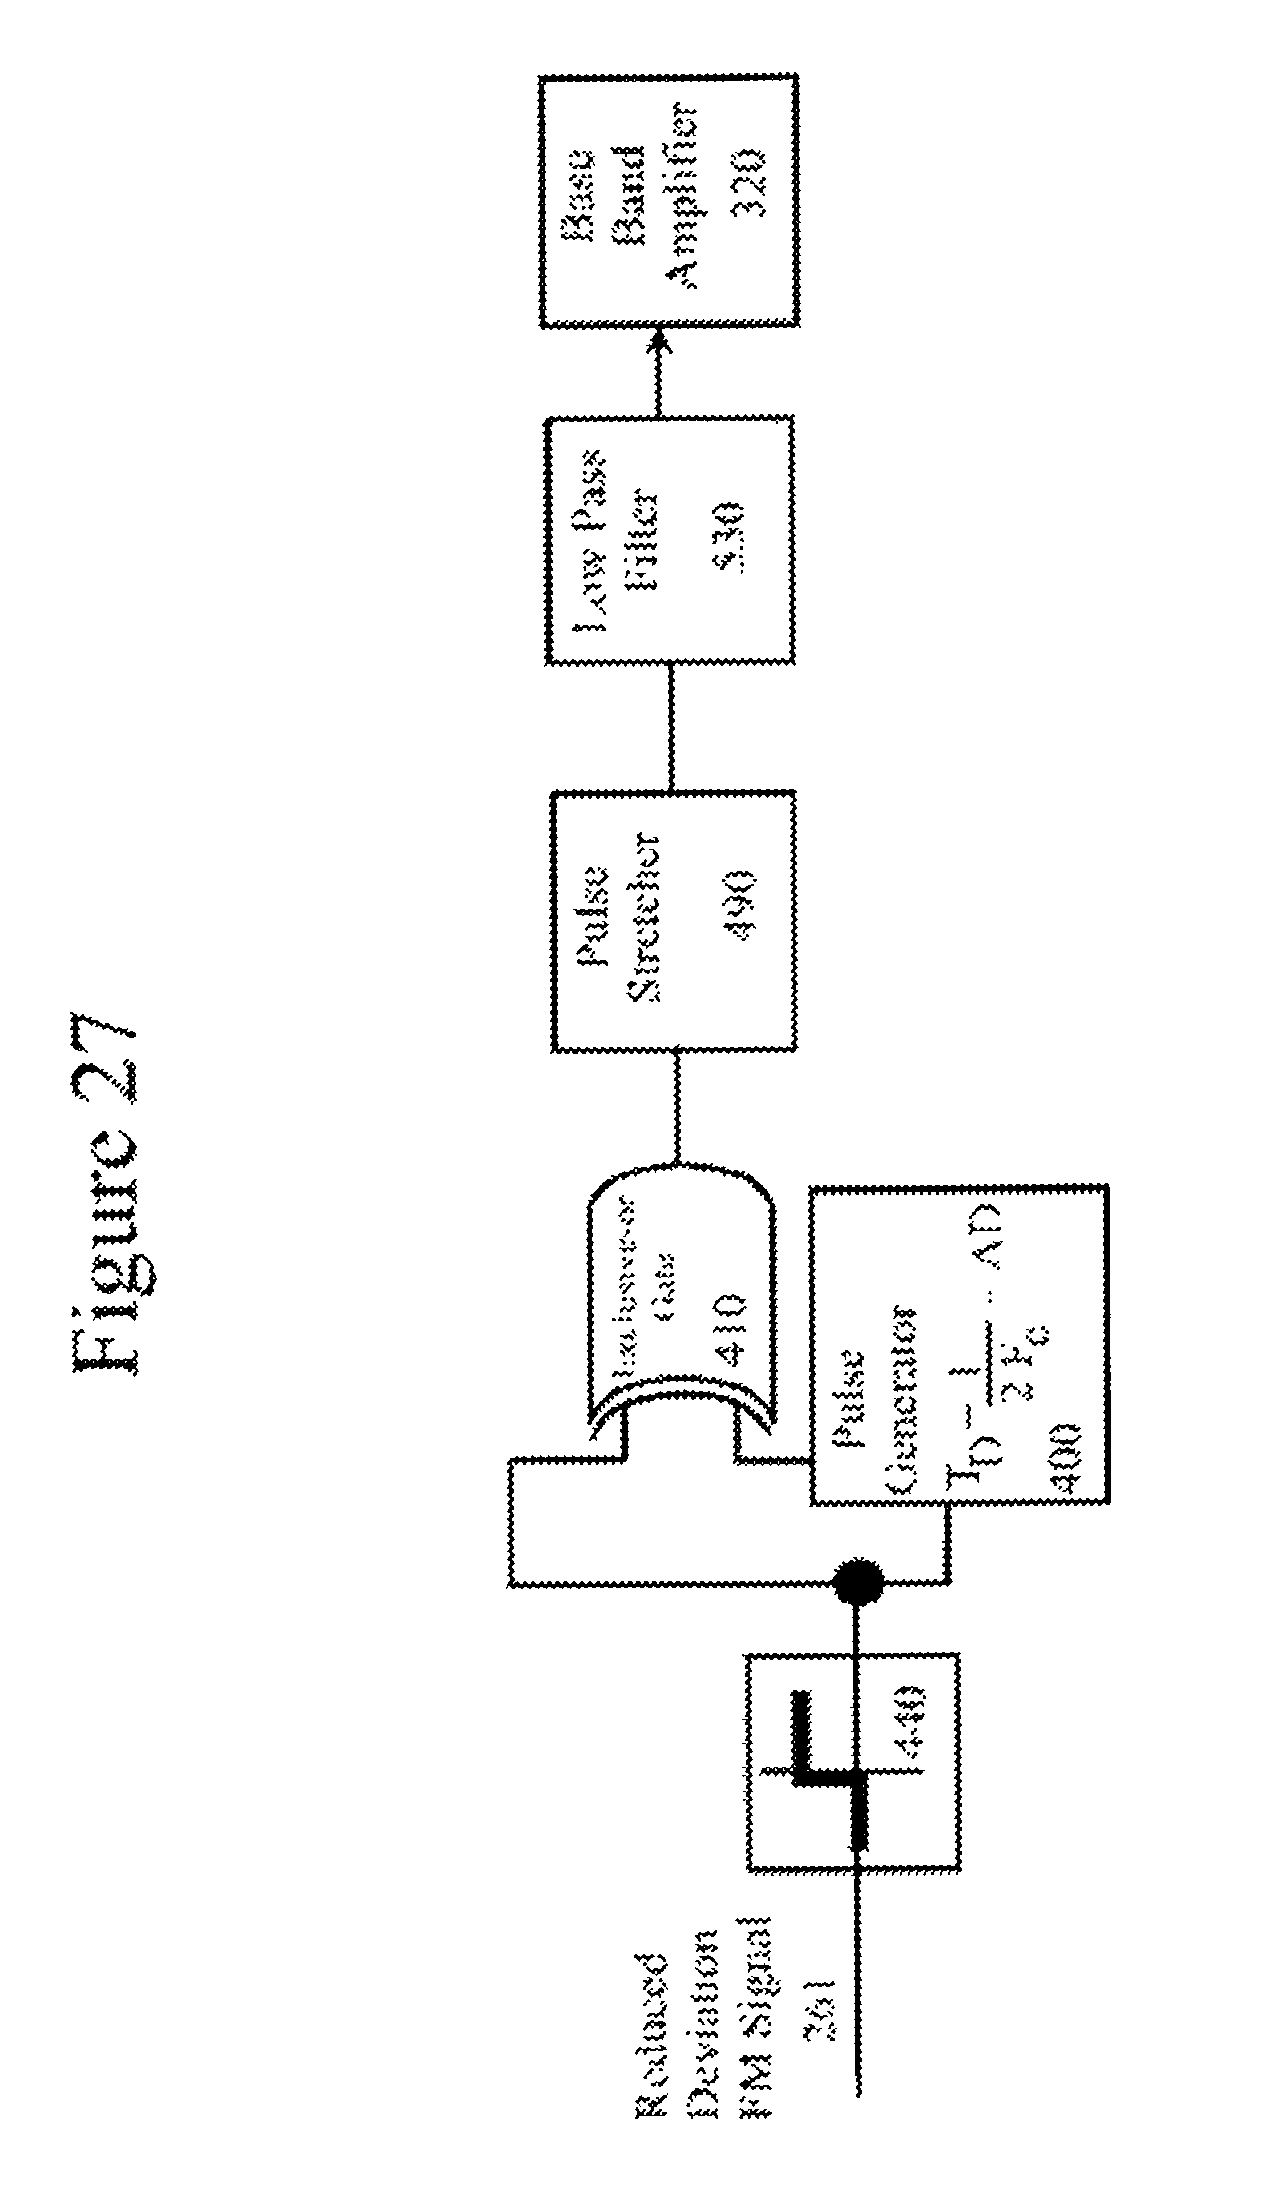 PhilcoH3412LPredictaTelevision additionally Brush Controller Schematic For Electric Vehicle furthermore Temperature  lification Circuit Diagram Using Humidity Sensor in addition Constant Current Source Circuit With High Precision Using Tl431 moreover Thirty Nc Light Water Circuit Using Cd4067 Cd40193 And Ne555. on discriminator circuit